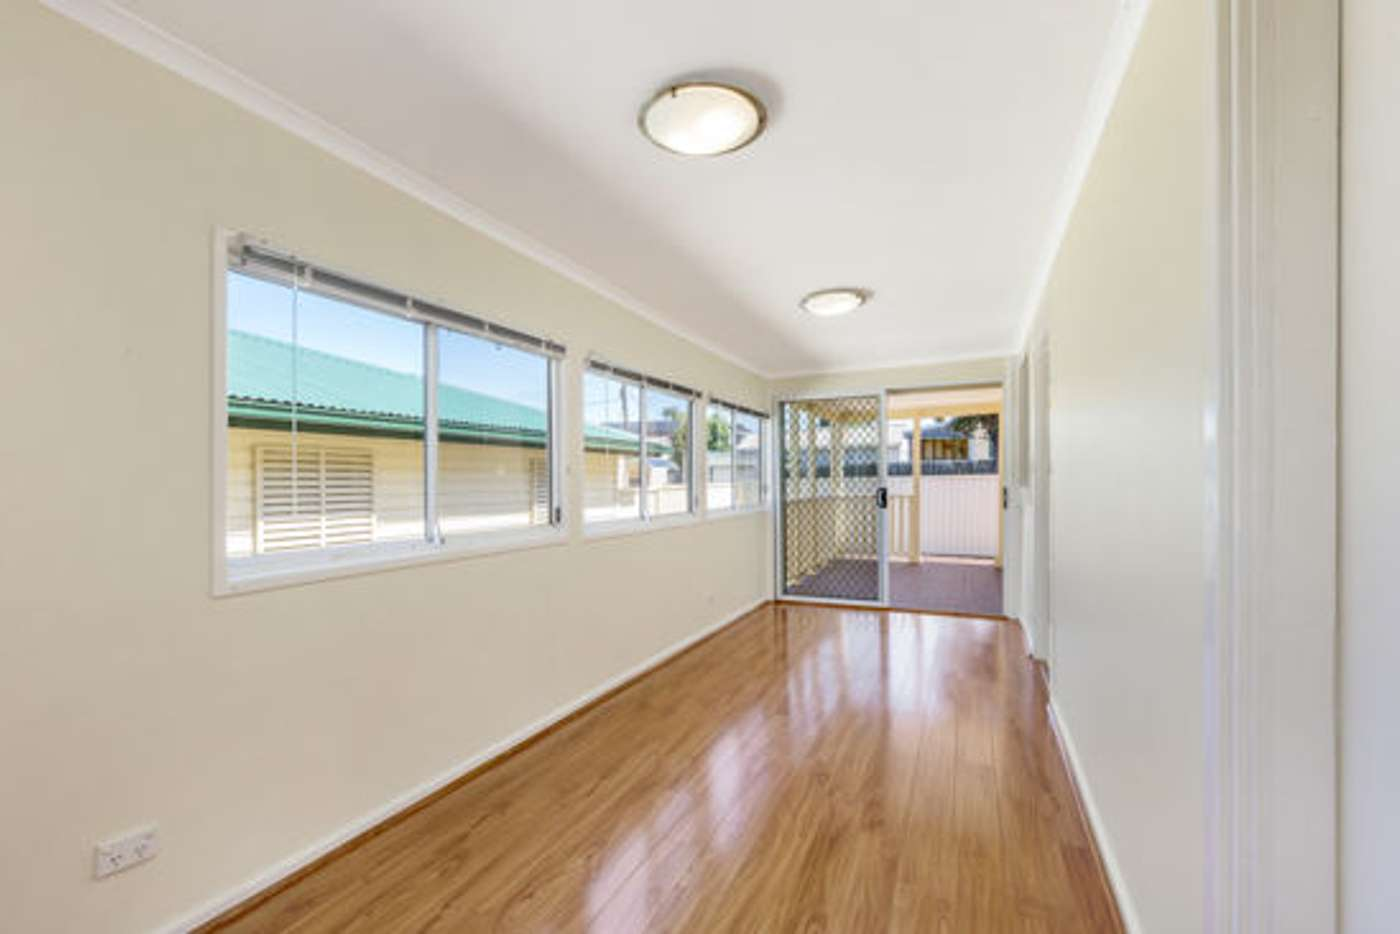 Fifth view of Homely house listing, 51 Hampstead Road, Auburn NSW 2144